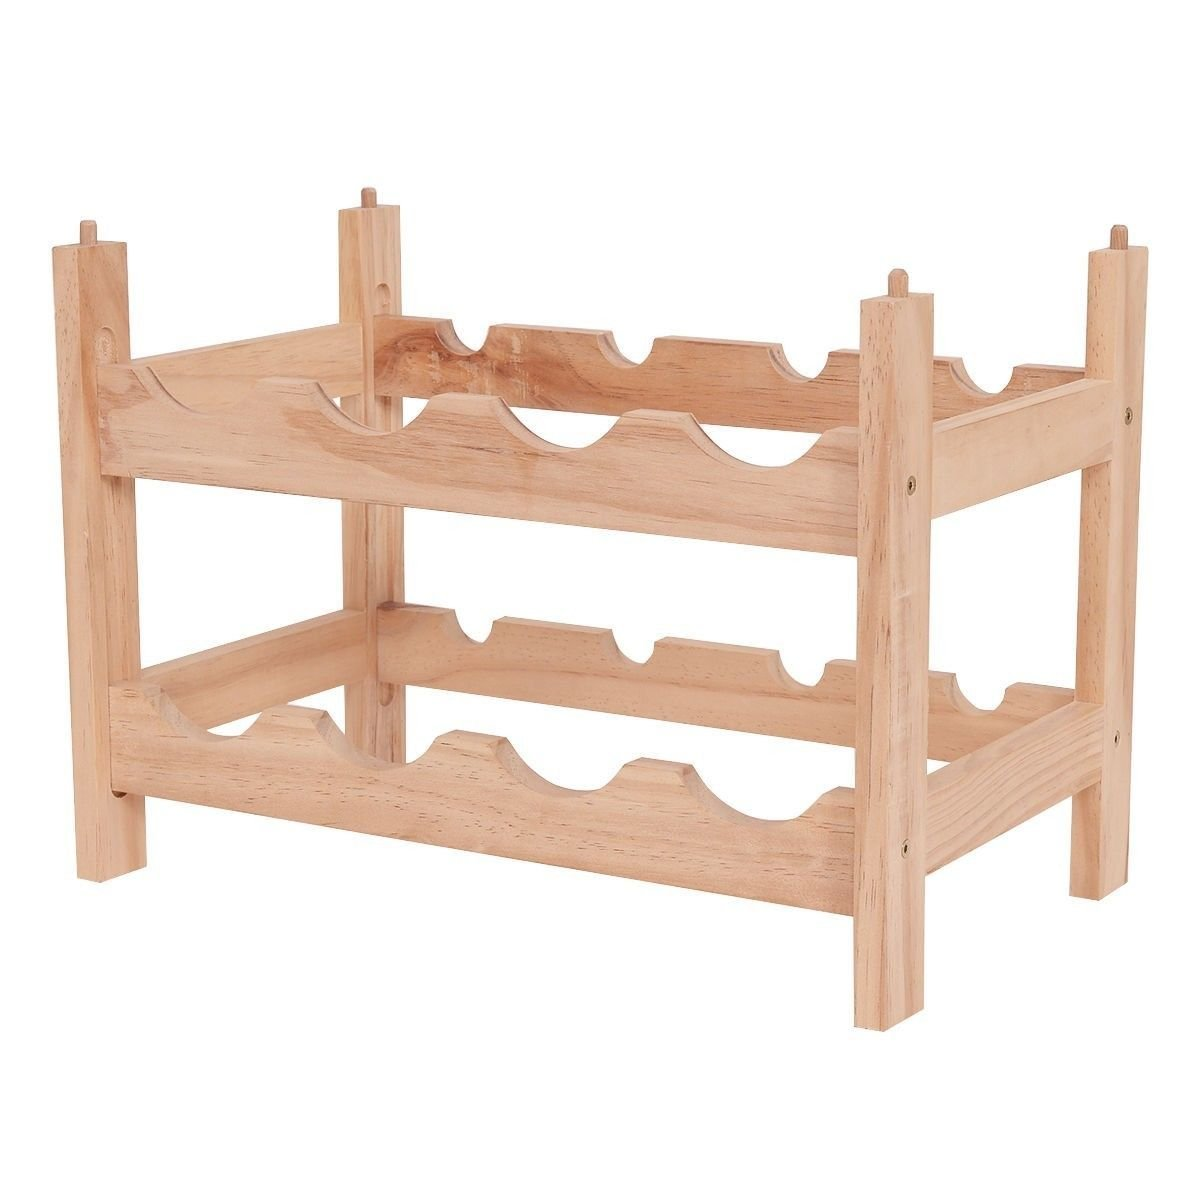 RX-789 Vintage 2 Tier 8 Bottle Natural Wood Wine Rack Holder Storage Display Shelf Tool